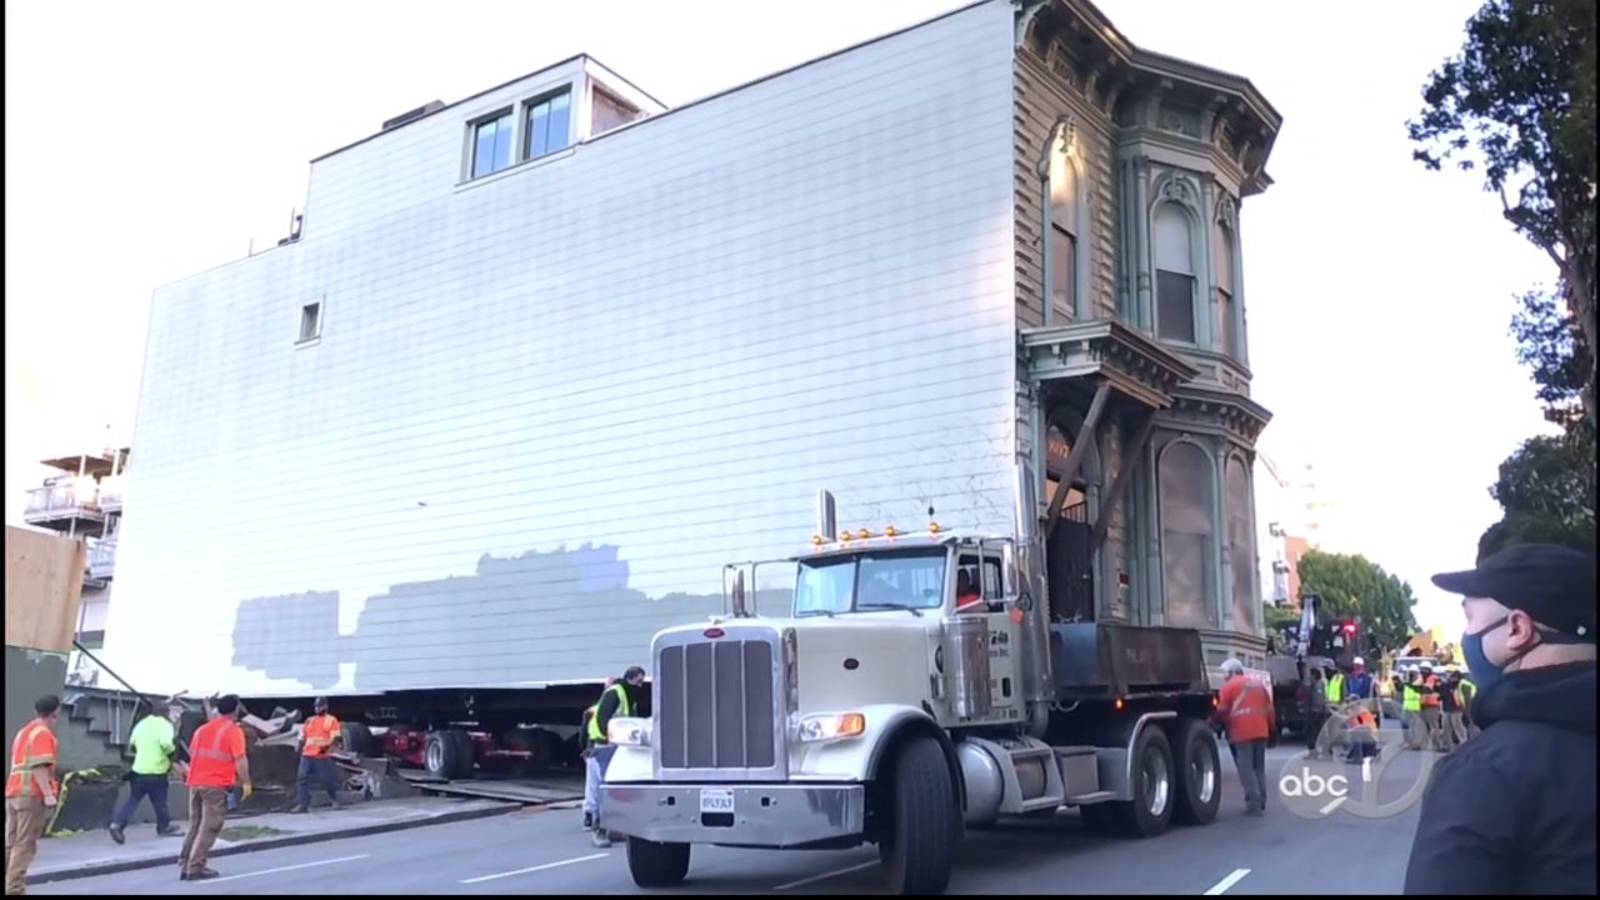 Historic 1880s Victorian home moved in process that San Francisco hasn't seen in 47 years